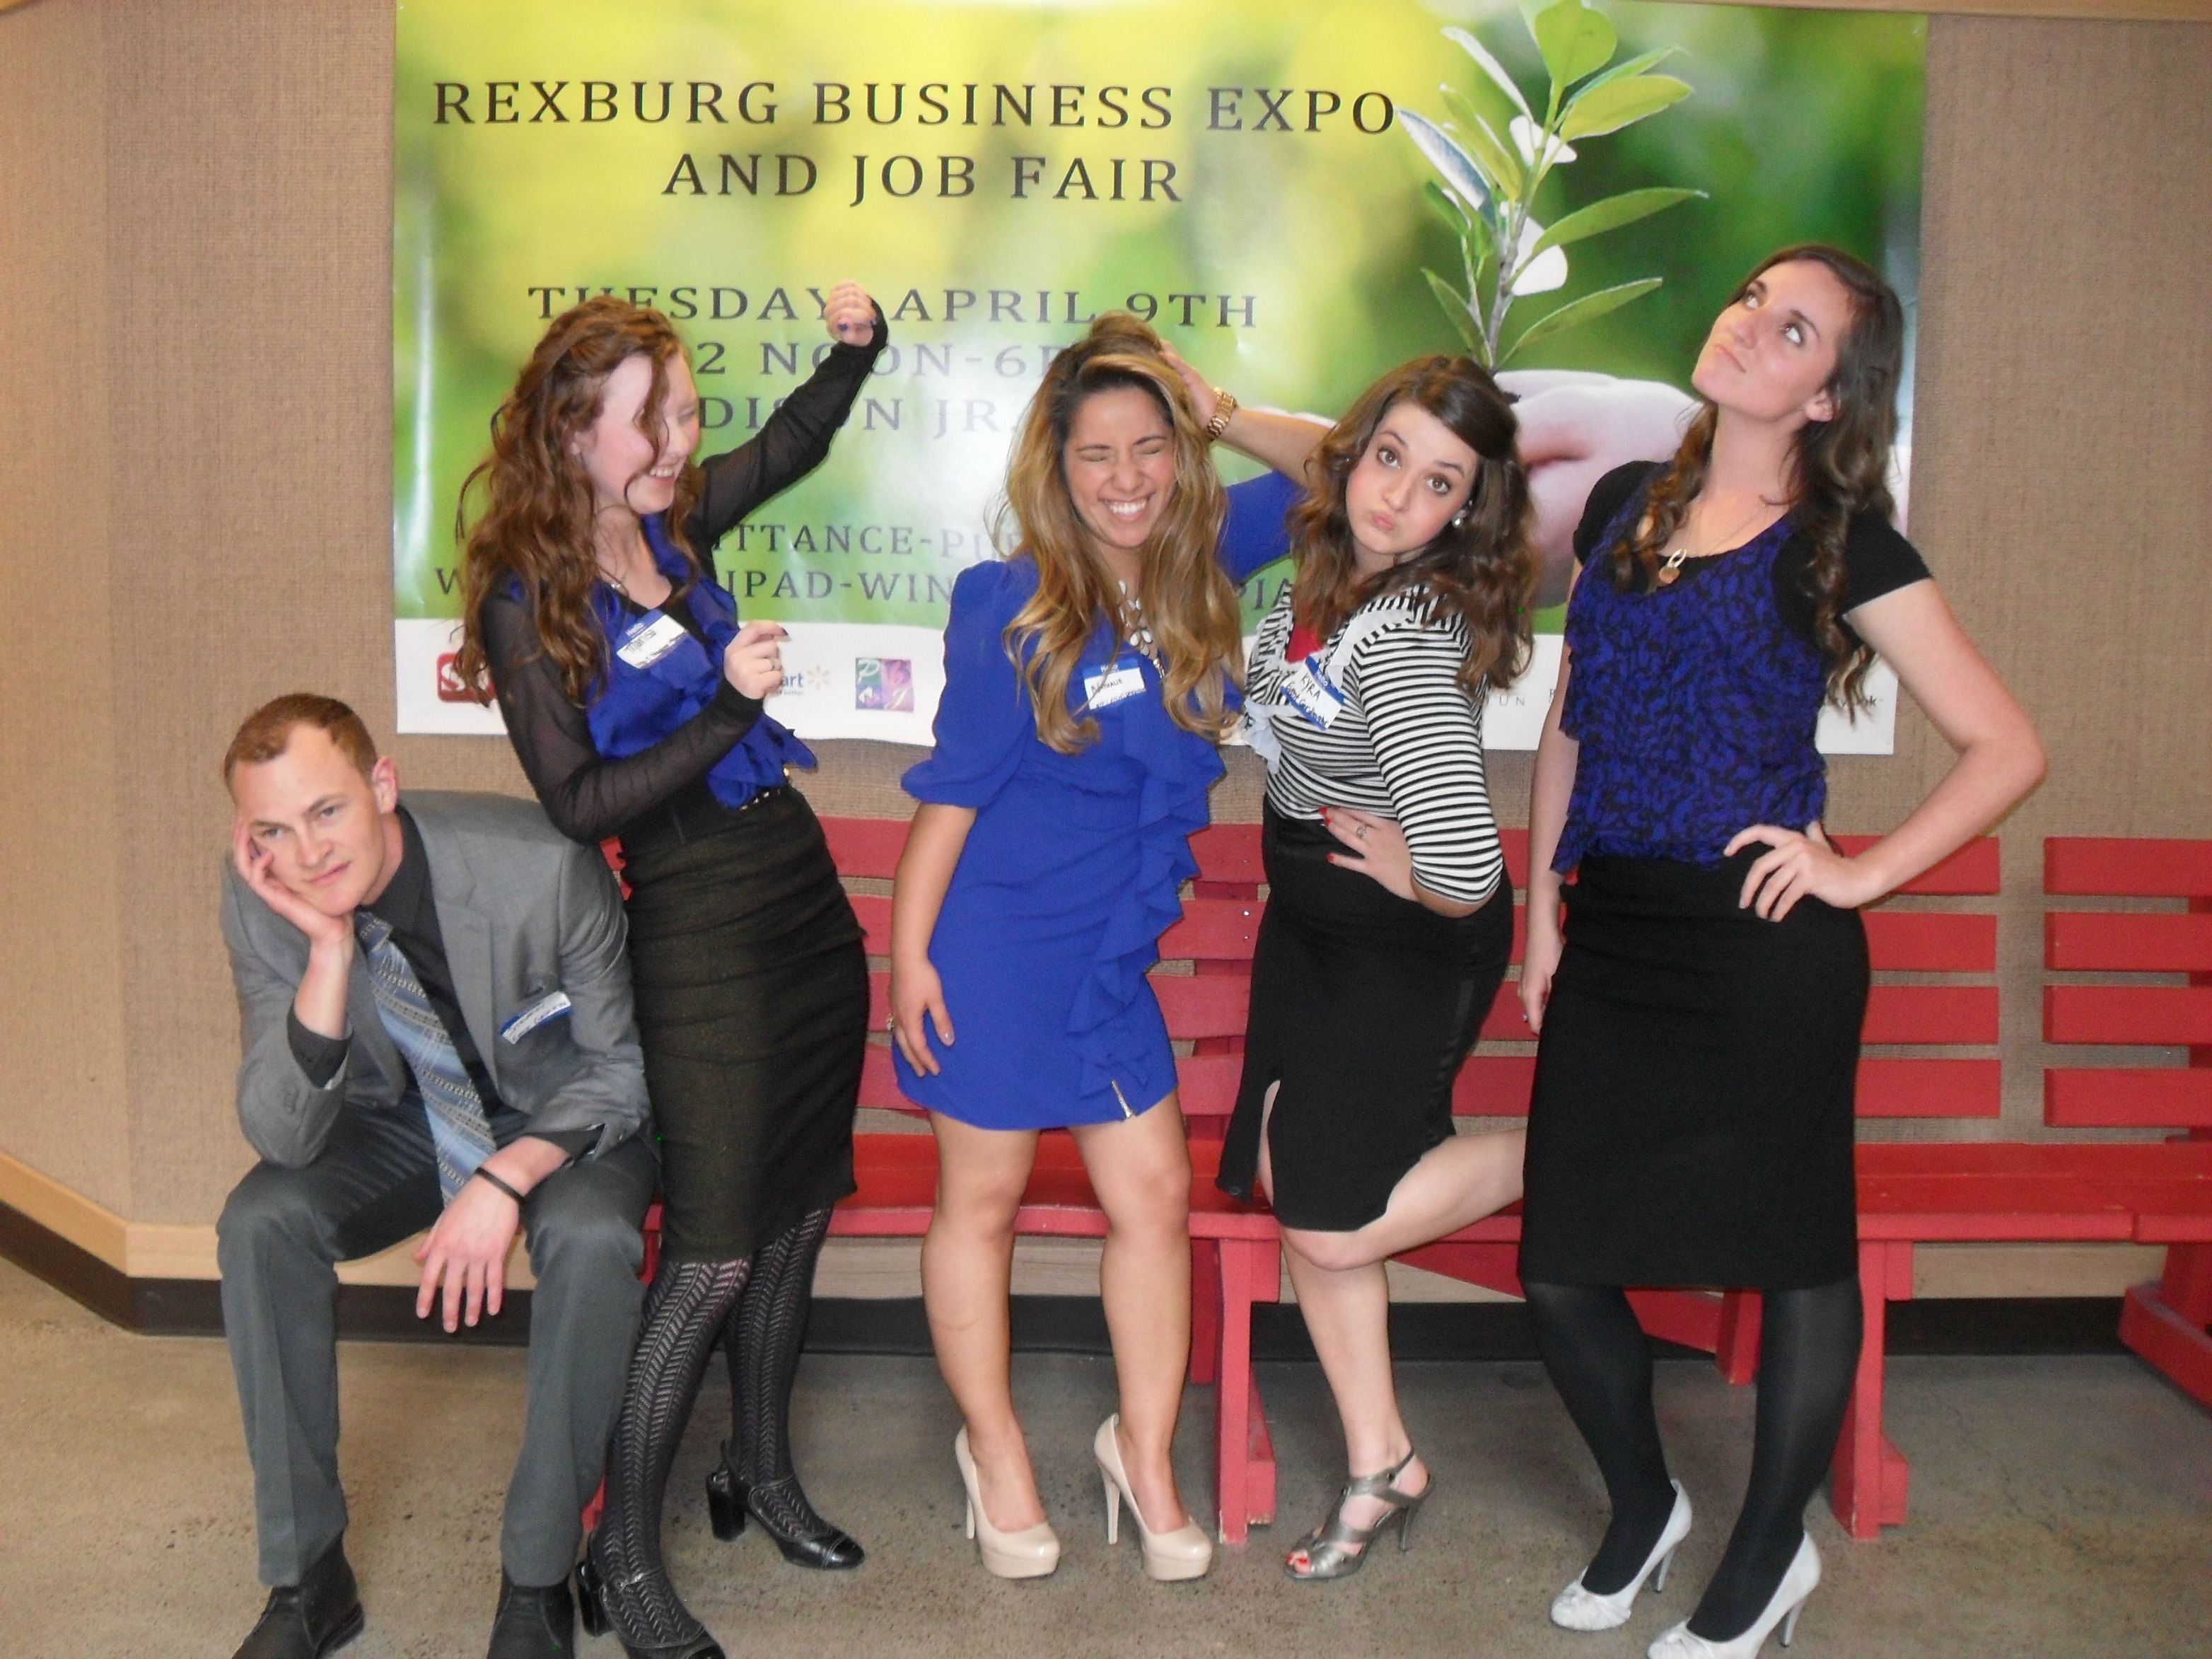 Rexburg Business Expo Student Events Management team being silly! Celebrating our success!